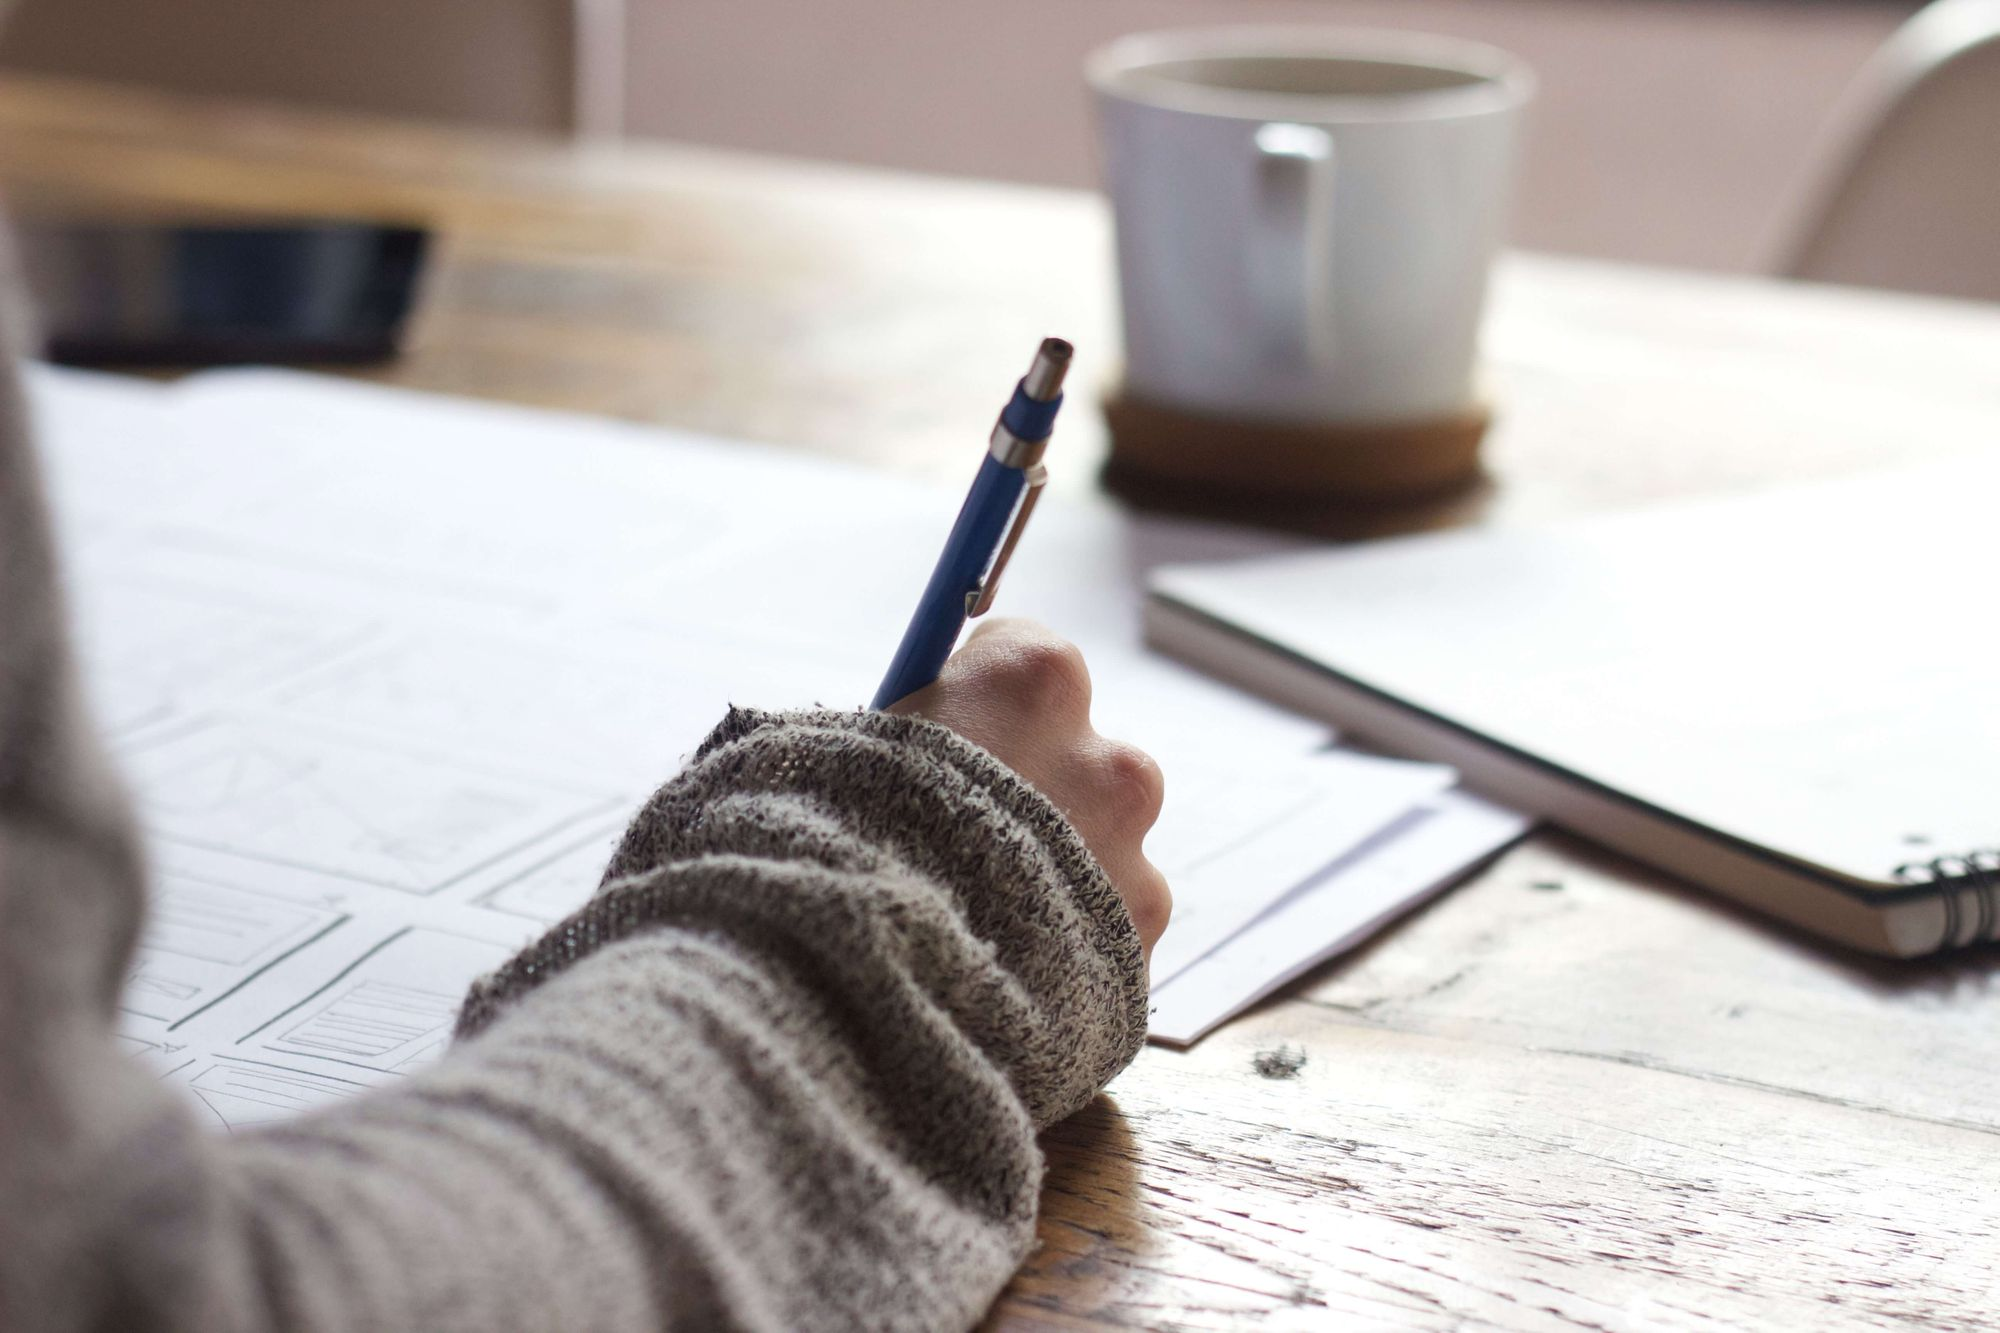 freelance writing is an easy way to make money from home